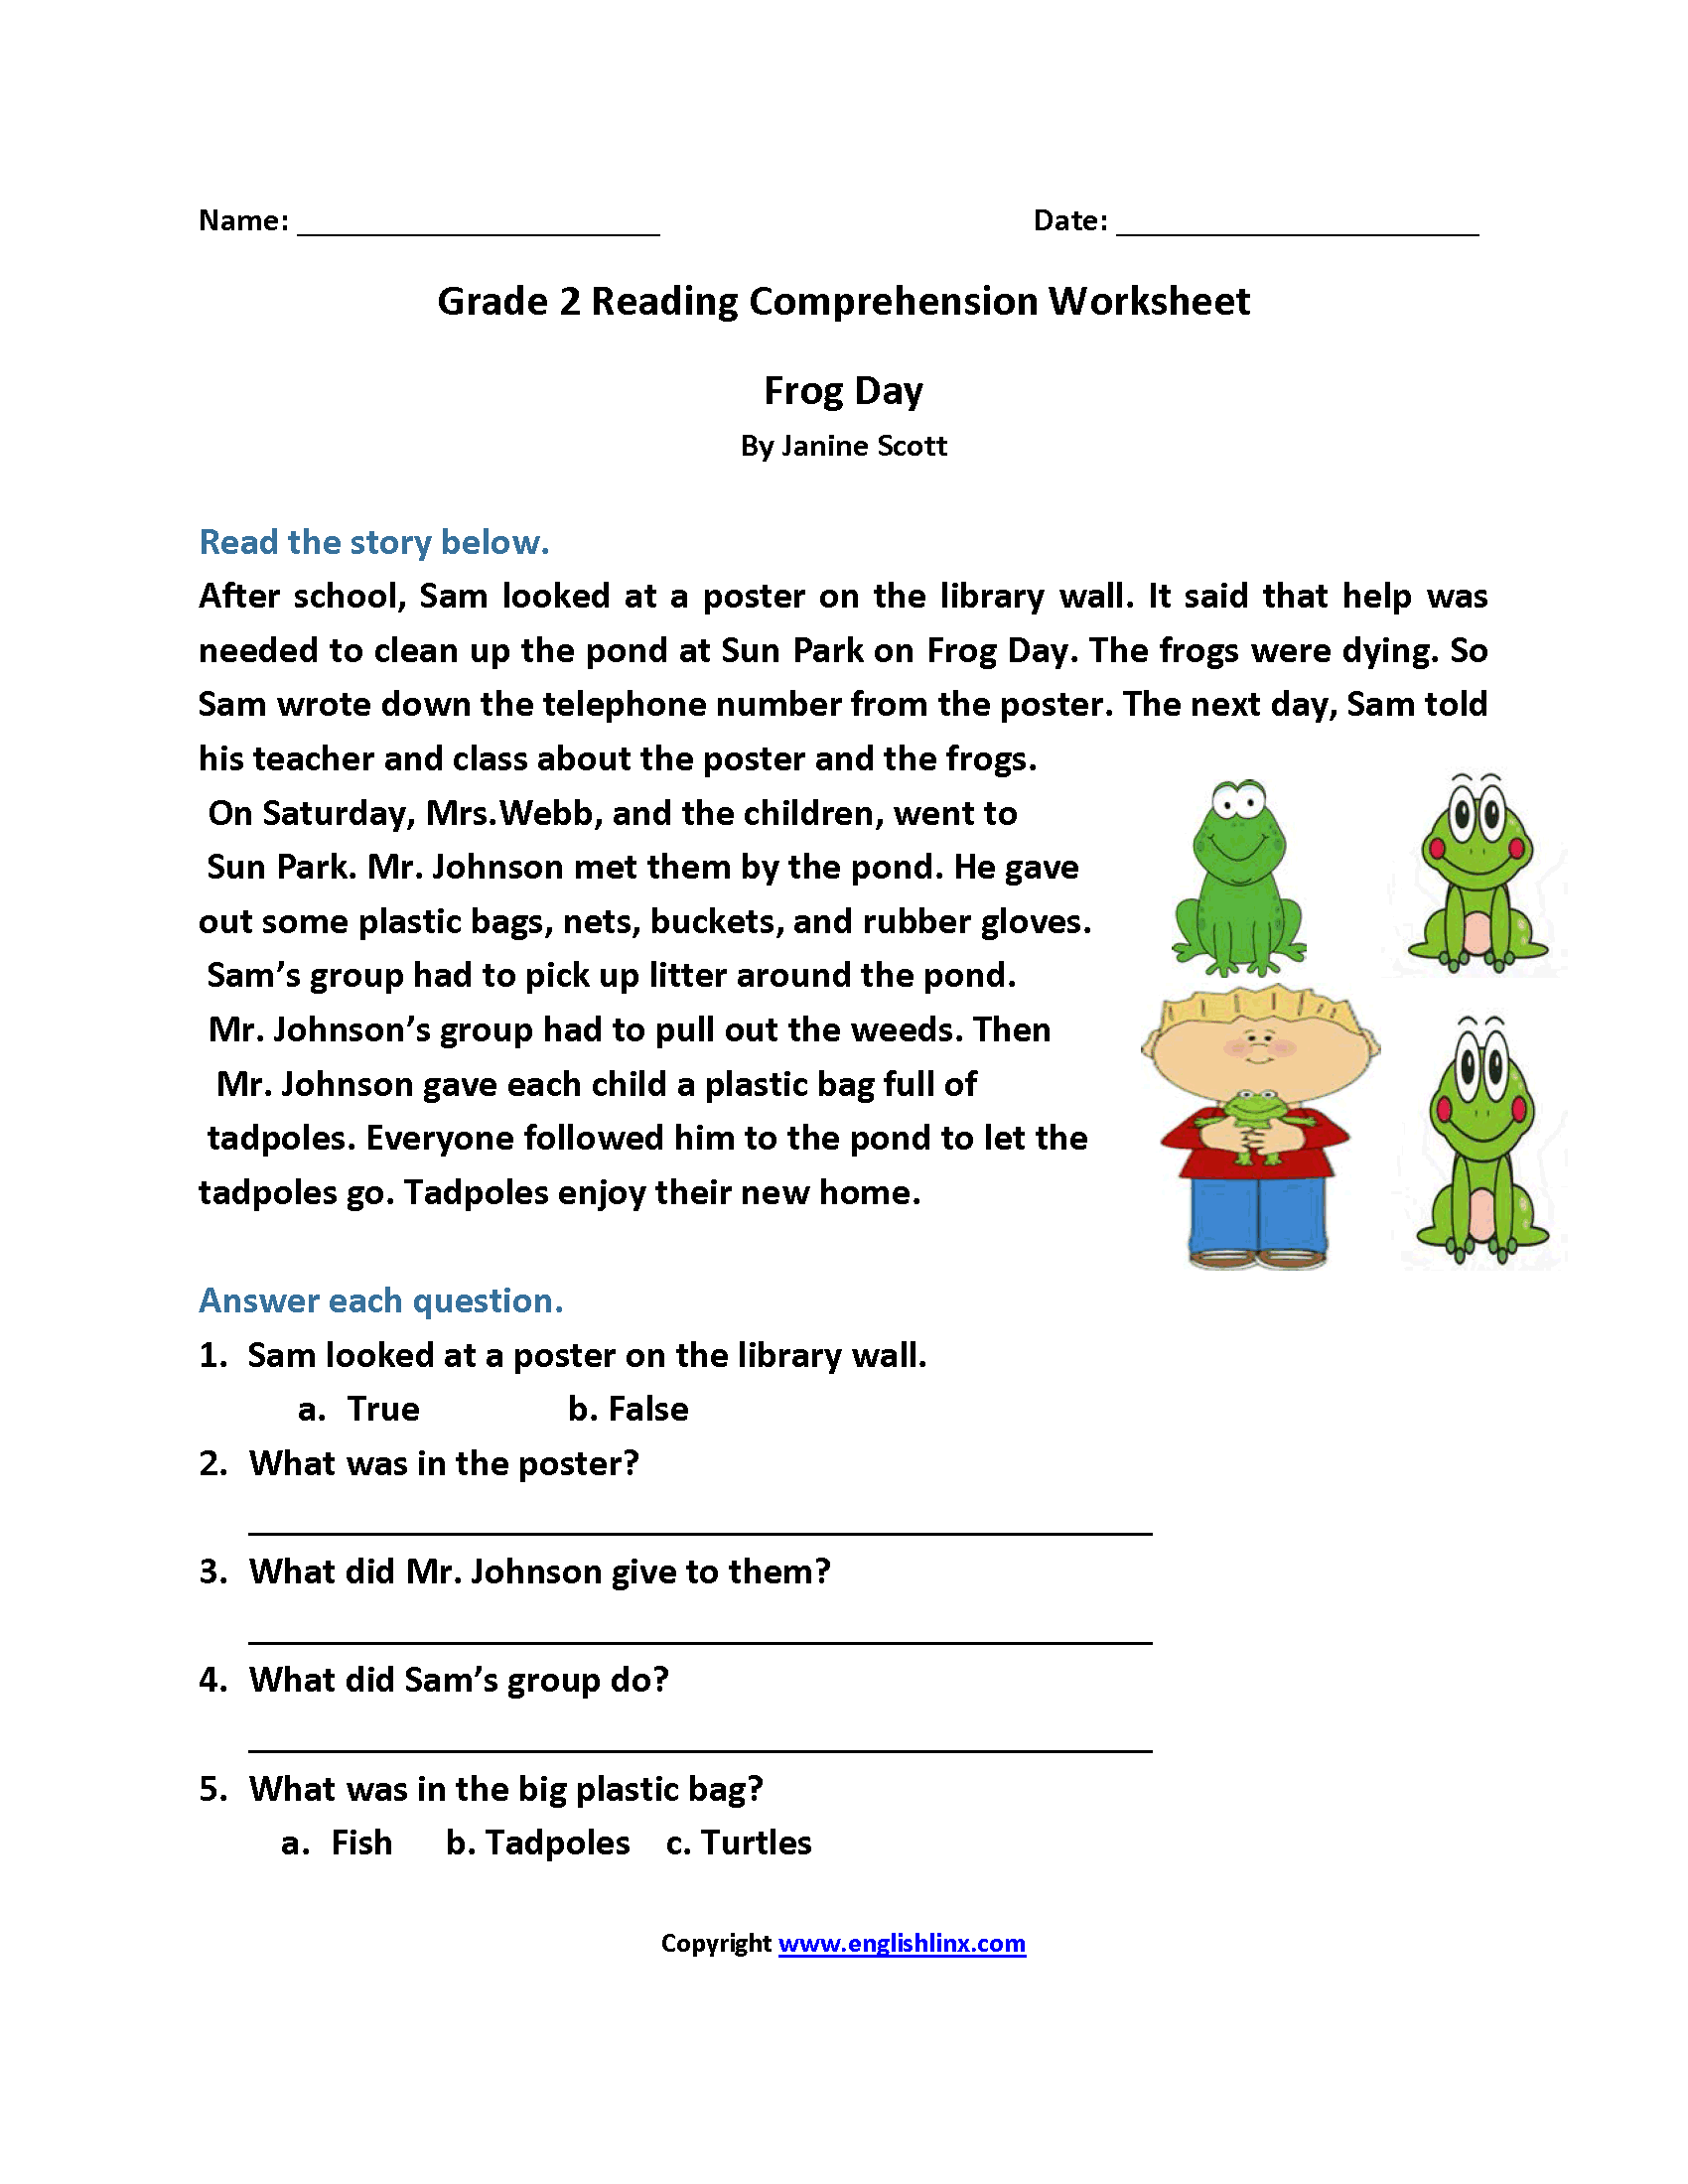 Comprehension Worksheet For 2nd Grade